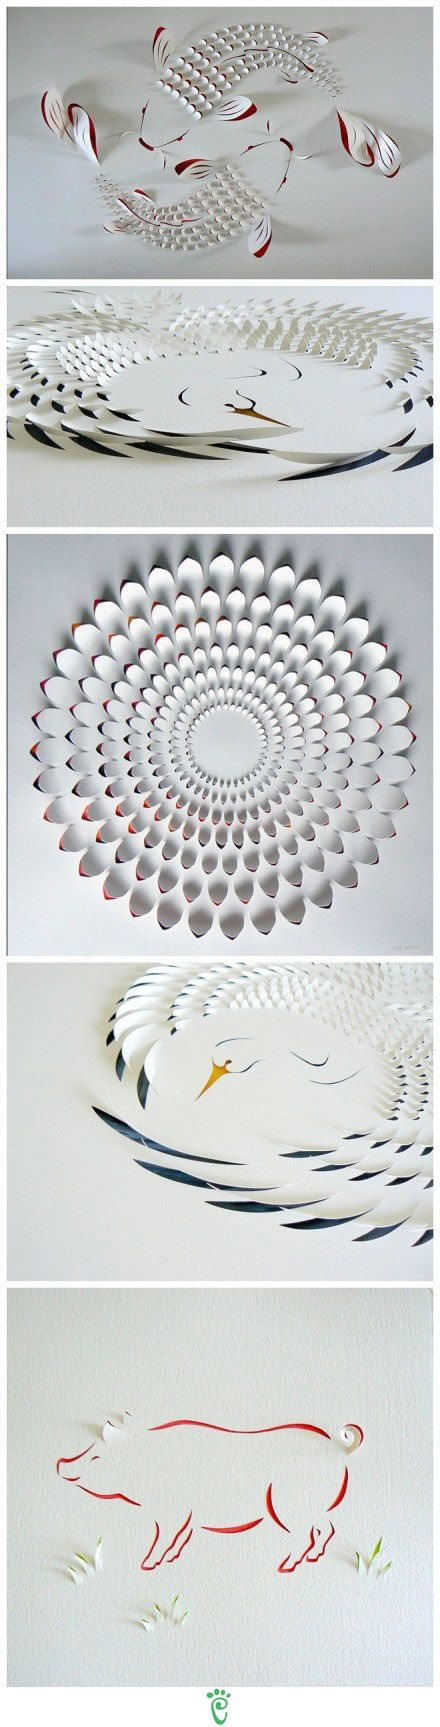 Not origami, but the cuts in the paper really add depth to the pictures.